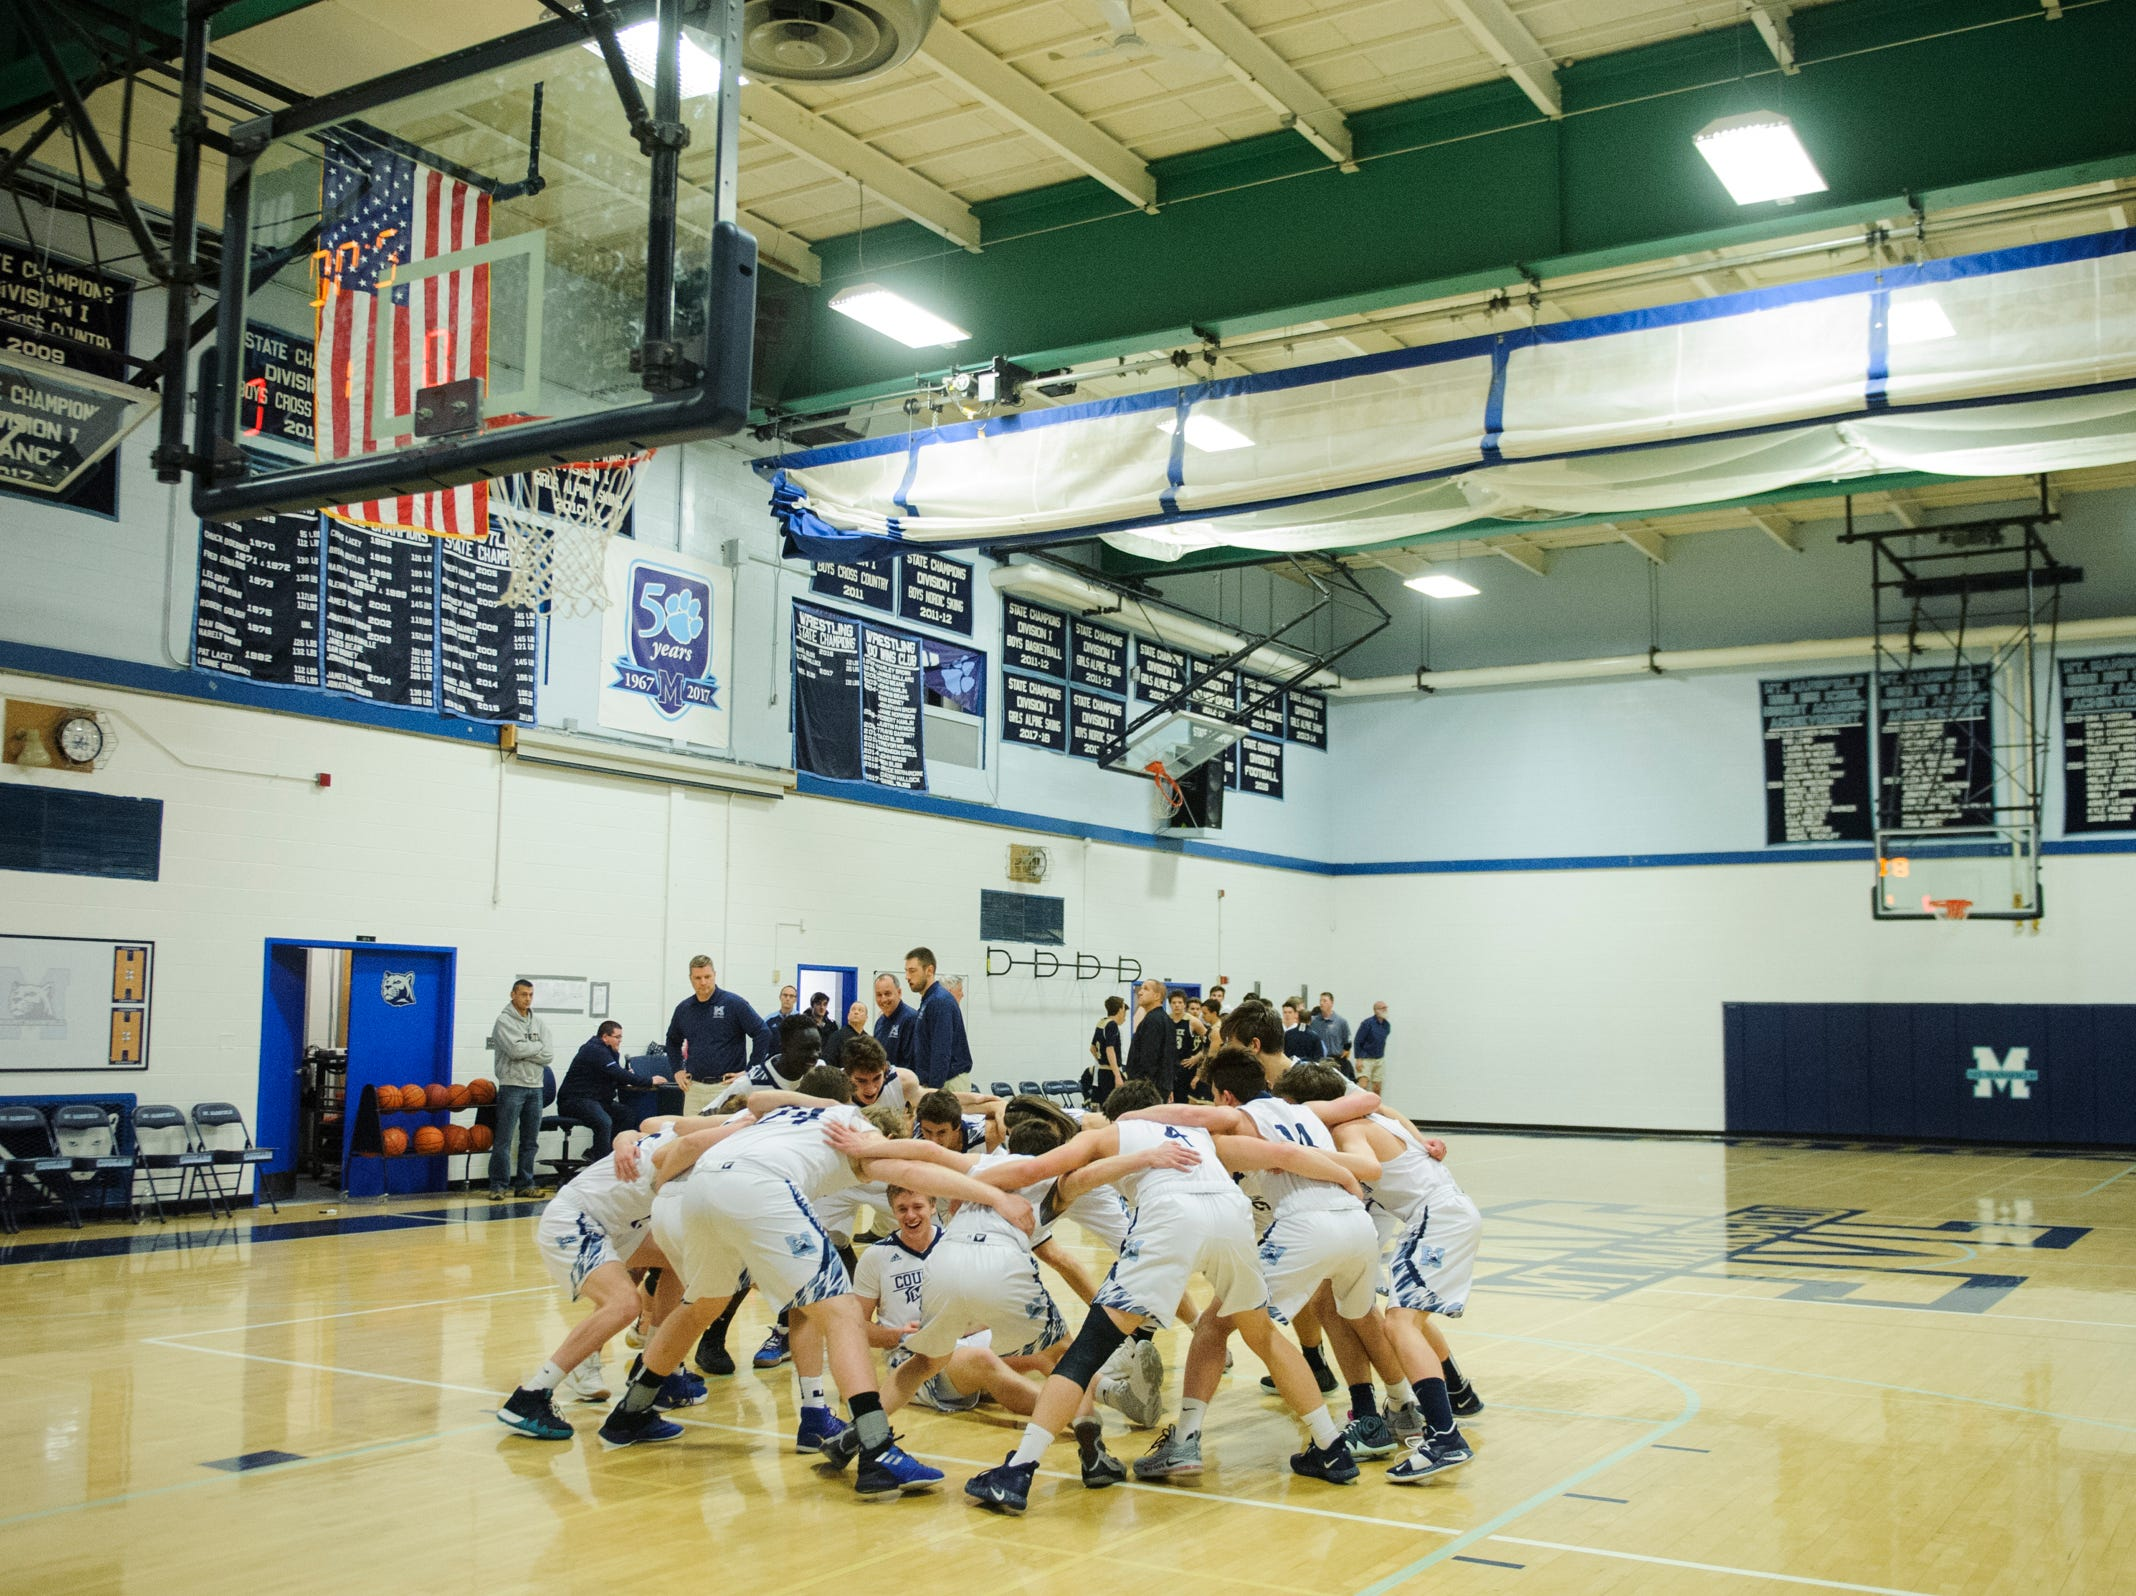 MMU huddles together during the boys basketball game between the Essex Hornets and the Mount Mansfield Cougars at MMU High School on Wednesday night February 13, 2019 in Jericho, Vermont.